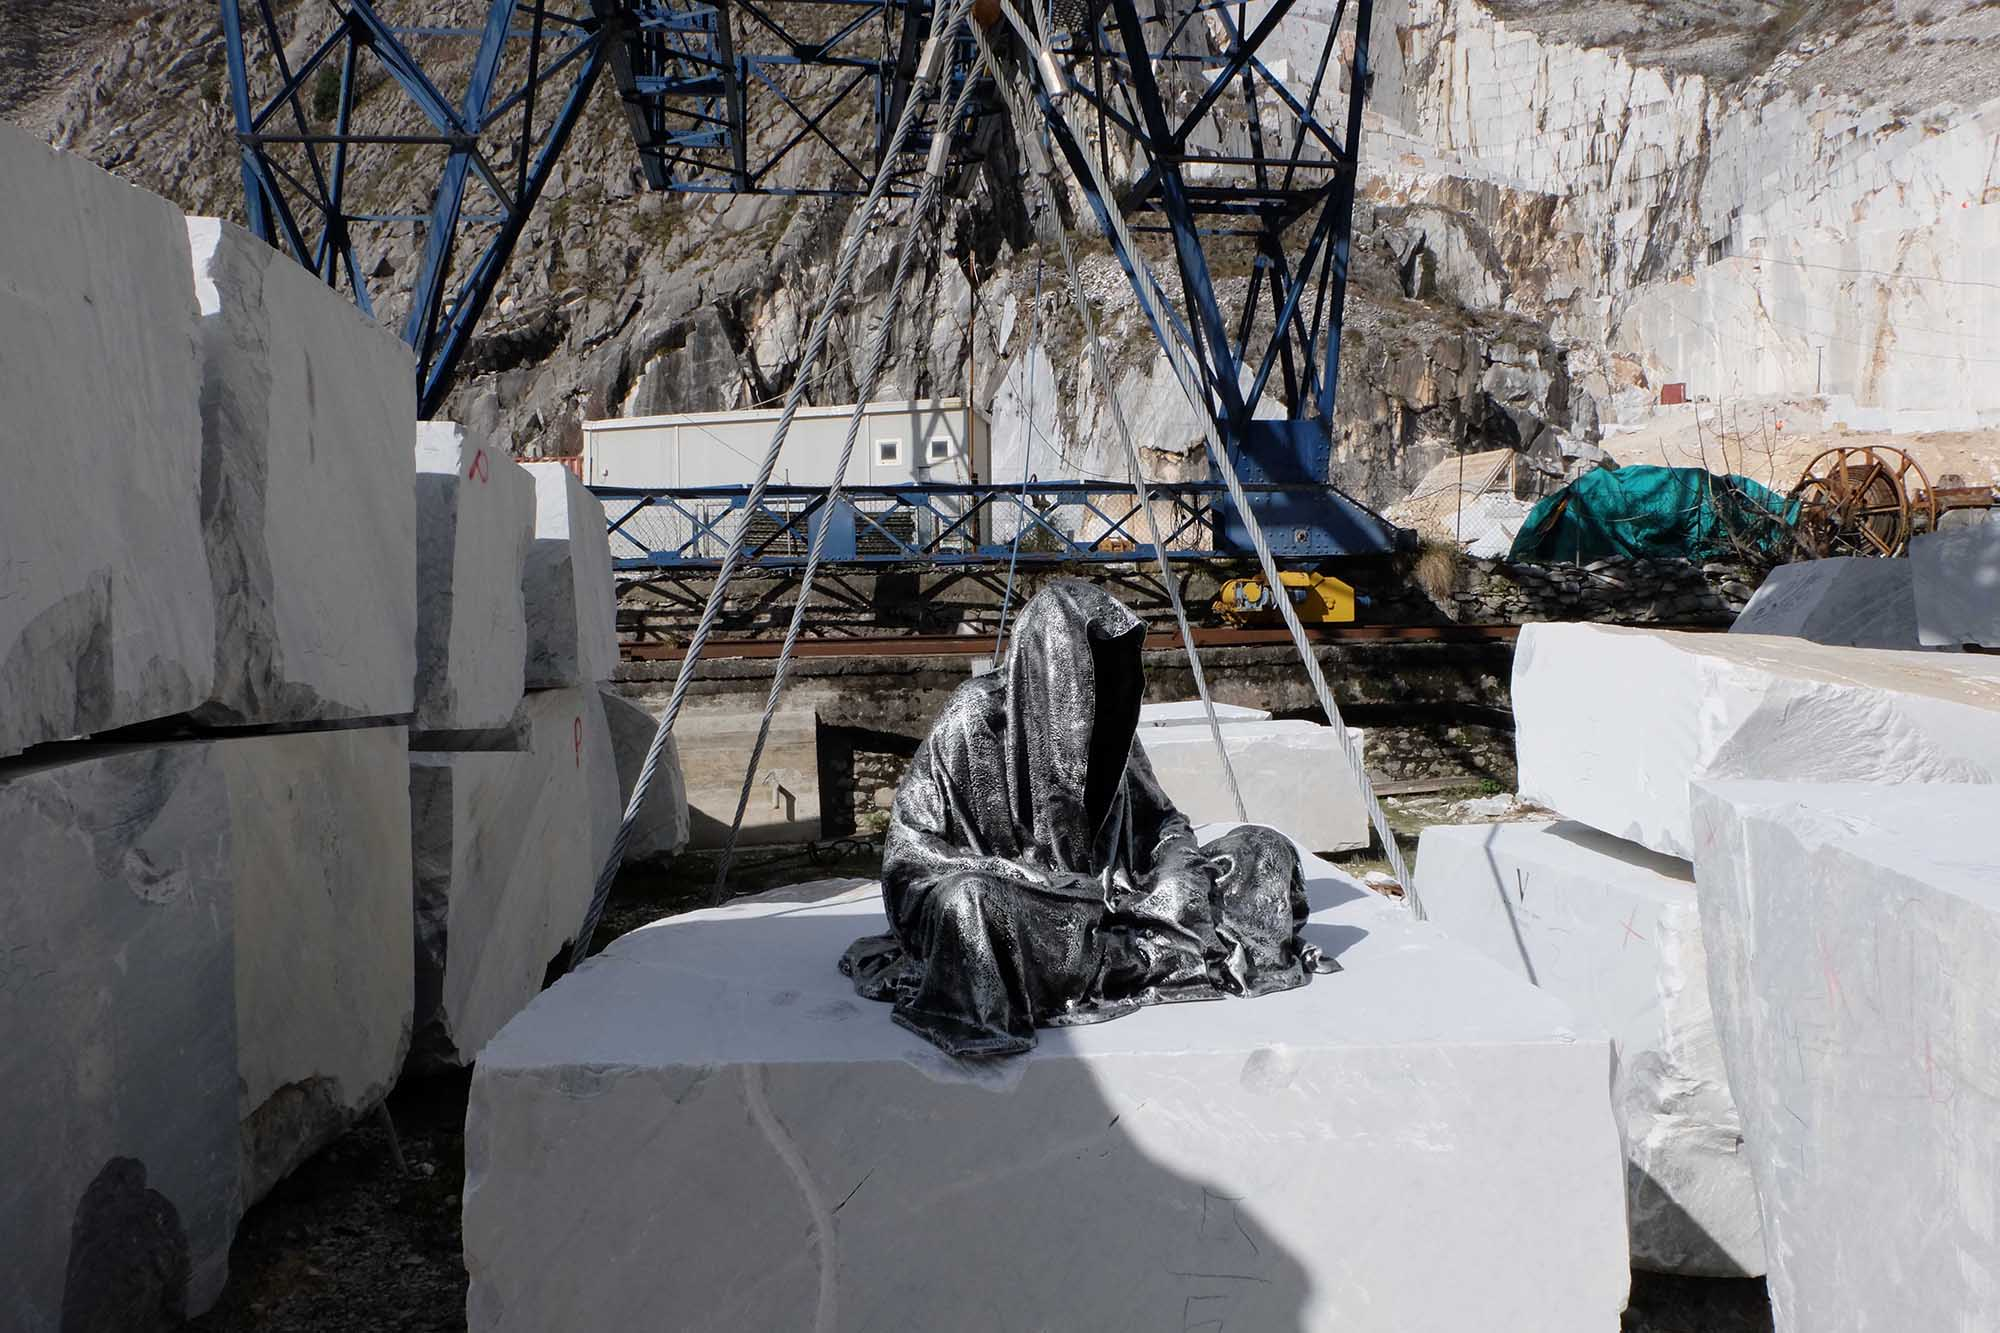 guardians of time manfred kili kielnhofer modern sculpture contemporary fine art design arts statue faceless religion stone marble carrara 1130